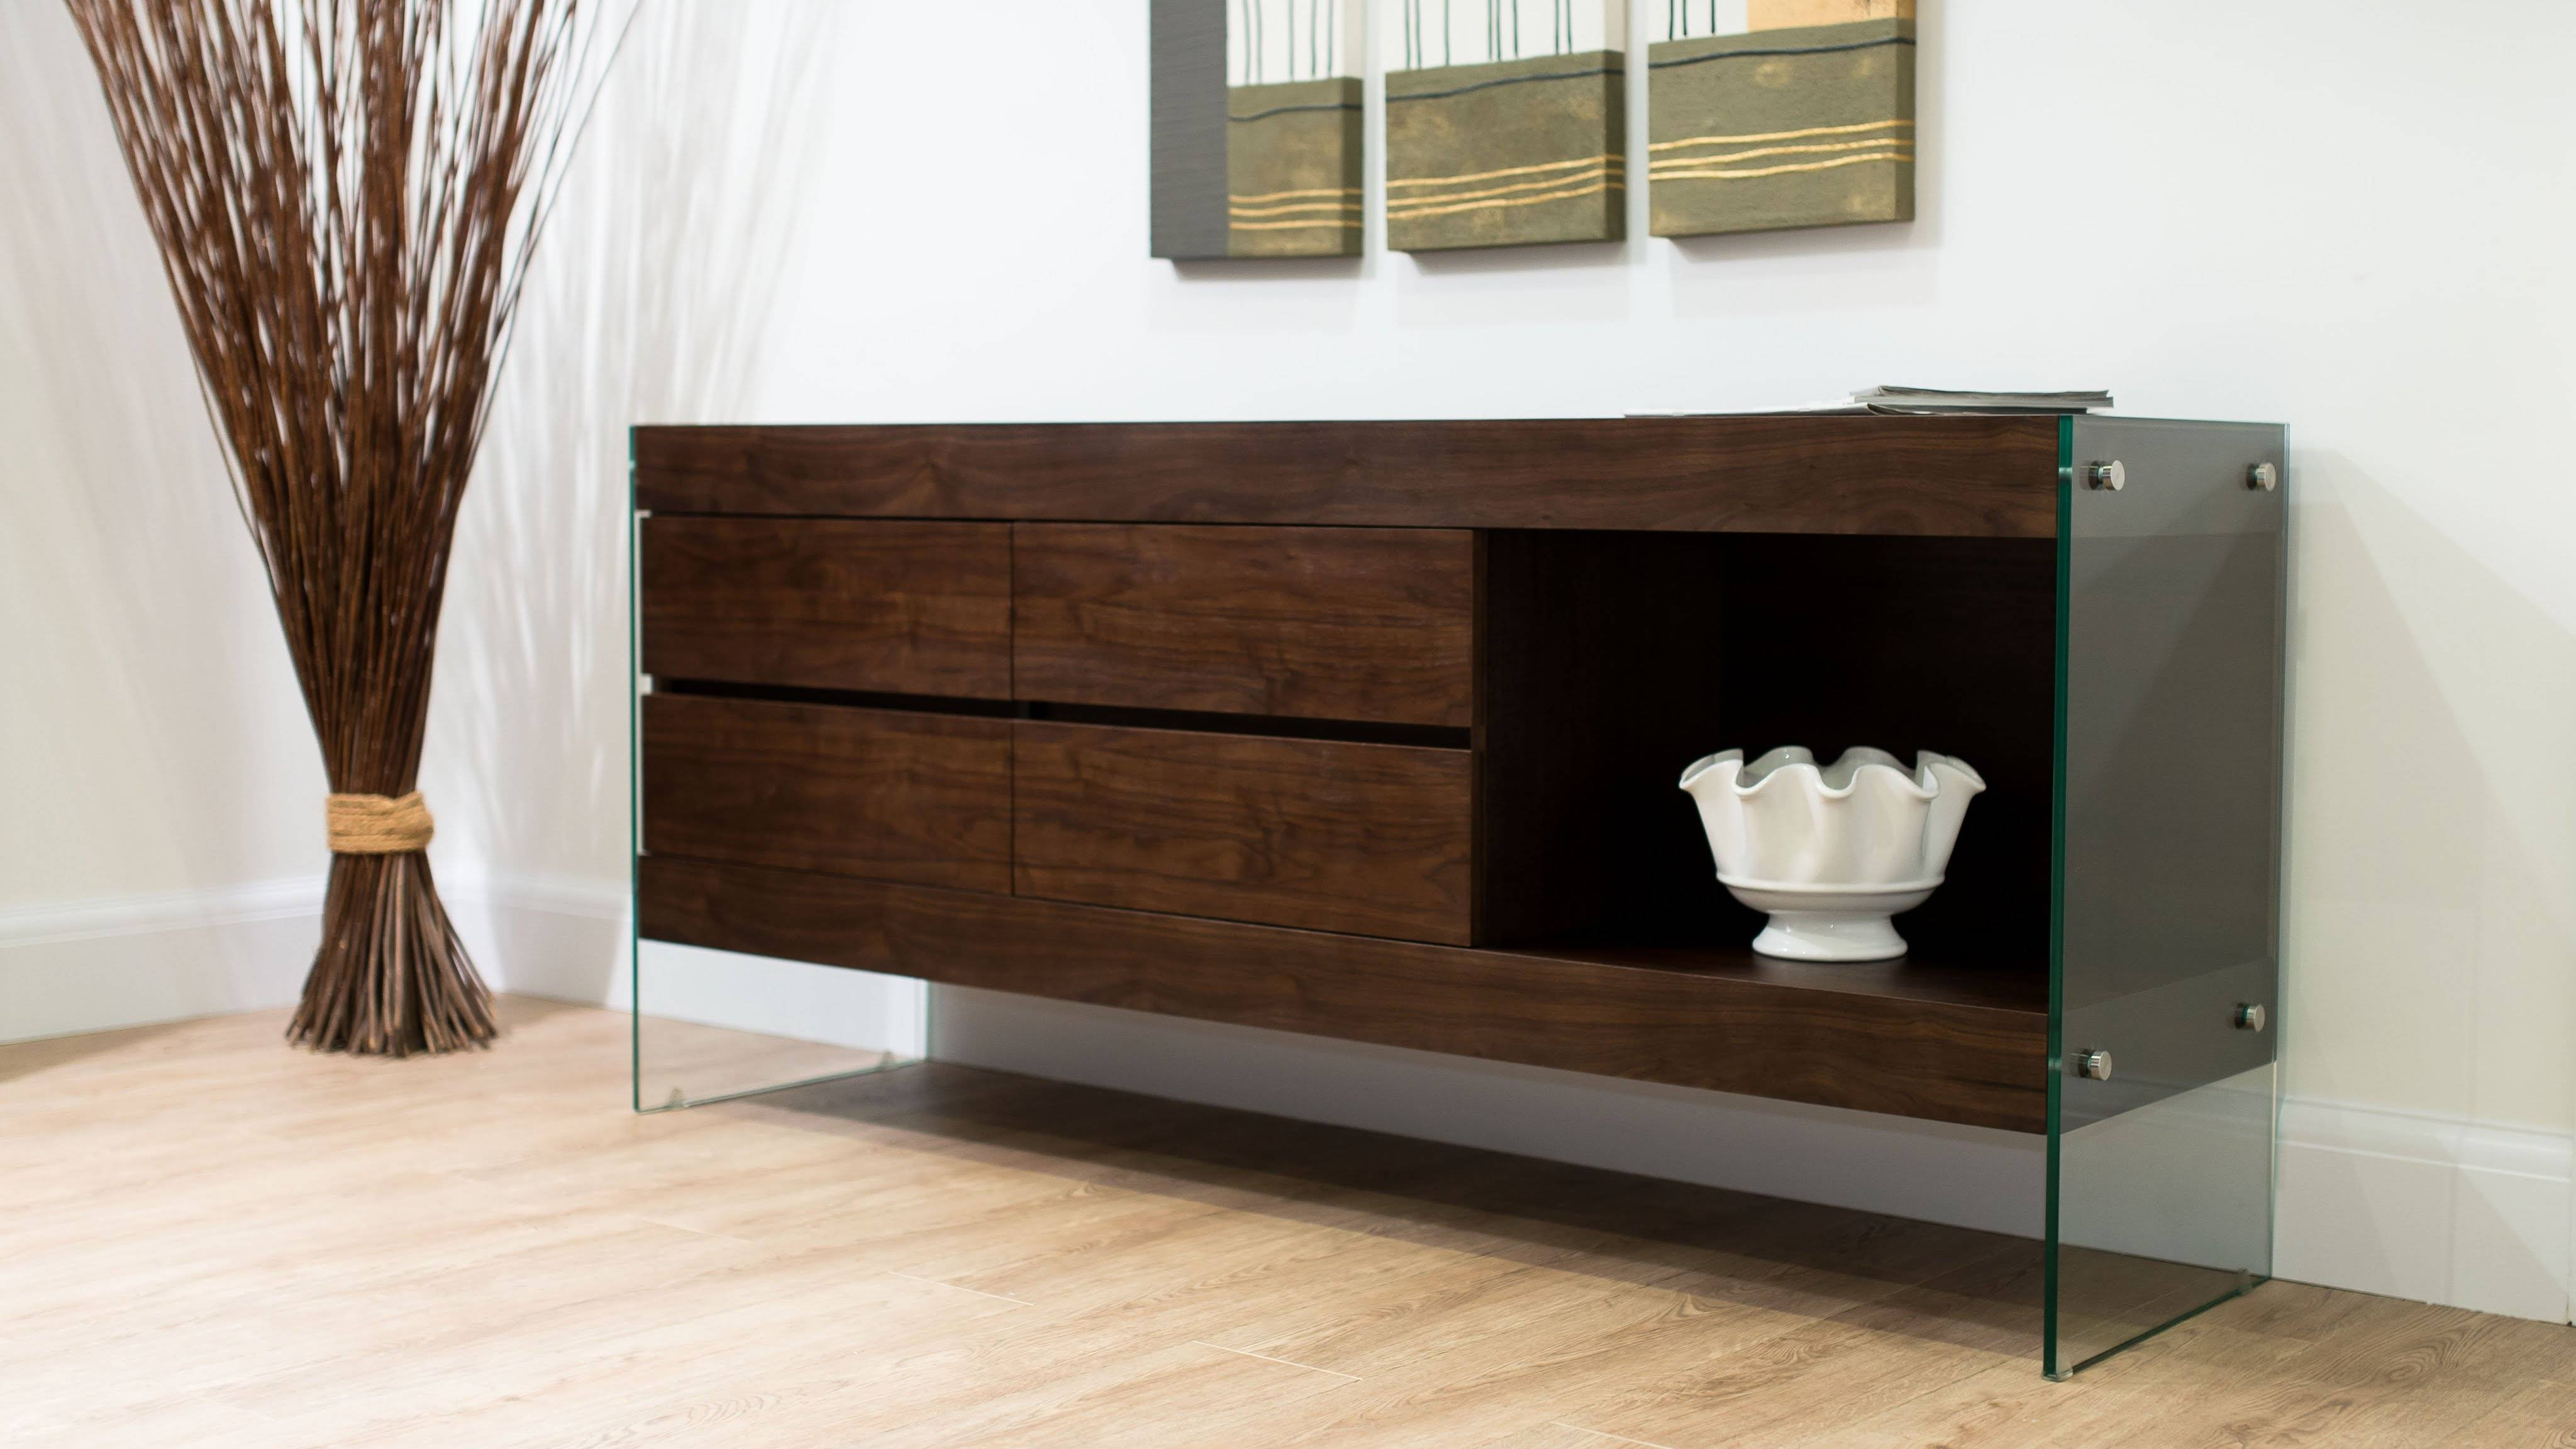 Aria Glass And Espresso Dark Wood Sideboard - Youtube pertaining to Dark Sideboards (Image 1 of 30)